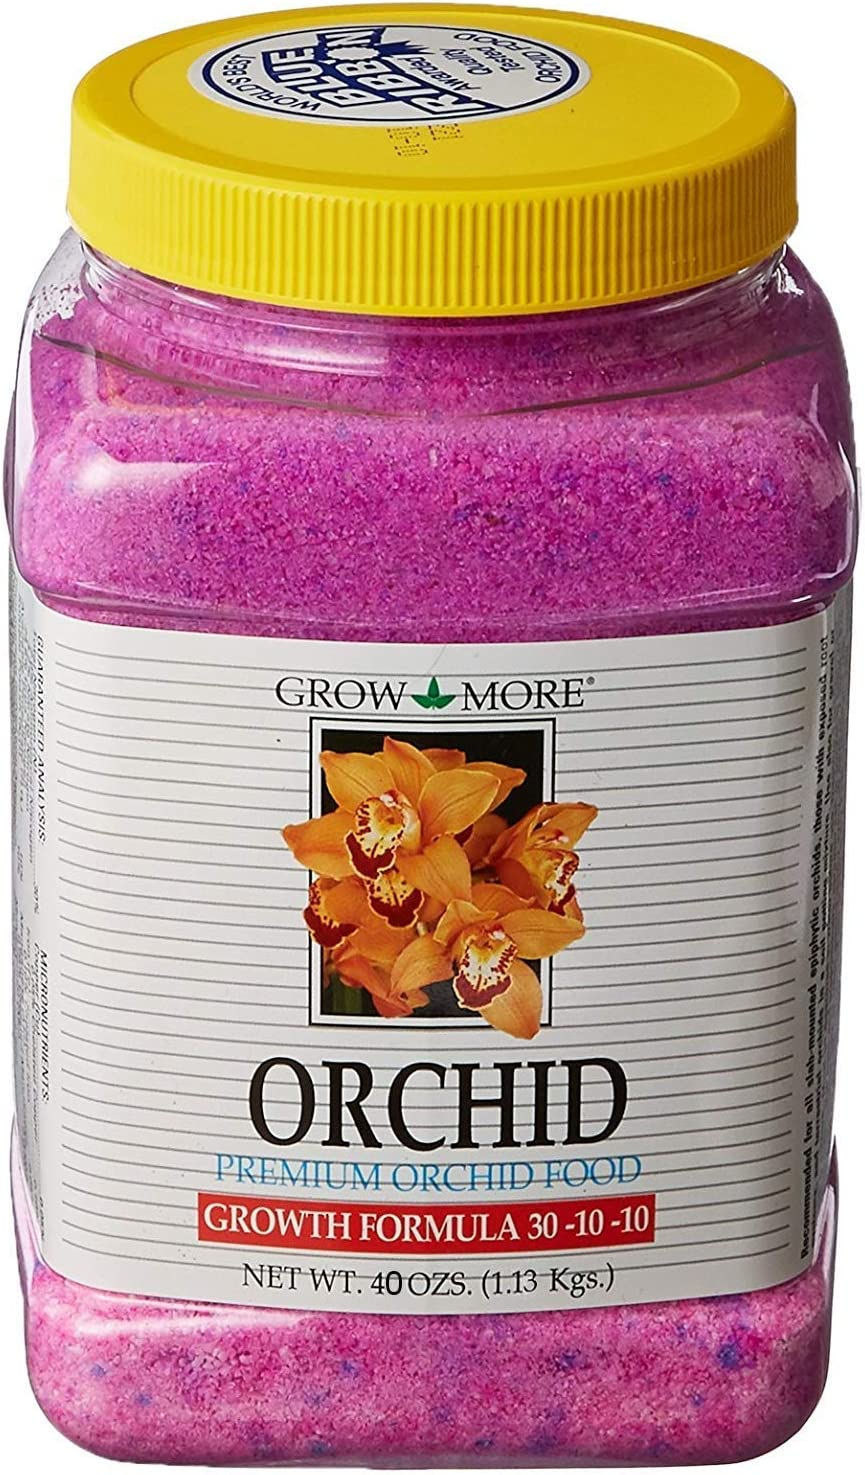 Grow More 7515 Orchid Growth 30-10-10, 40 Ounces, 40 oz, Brown/A